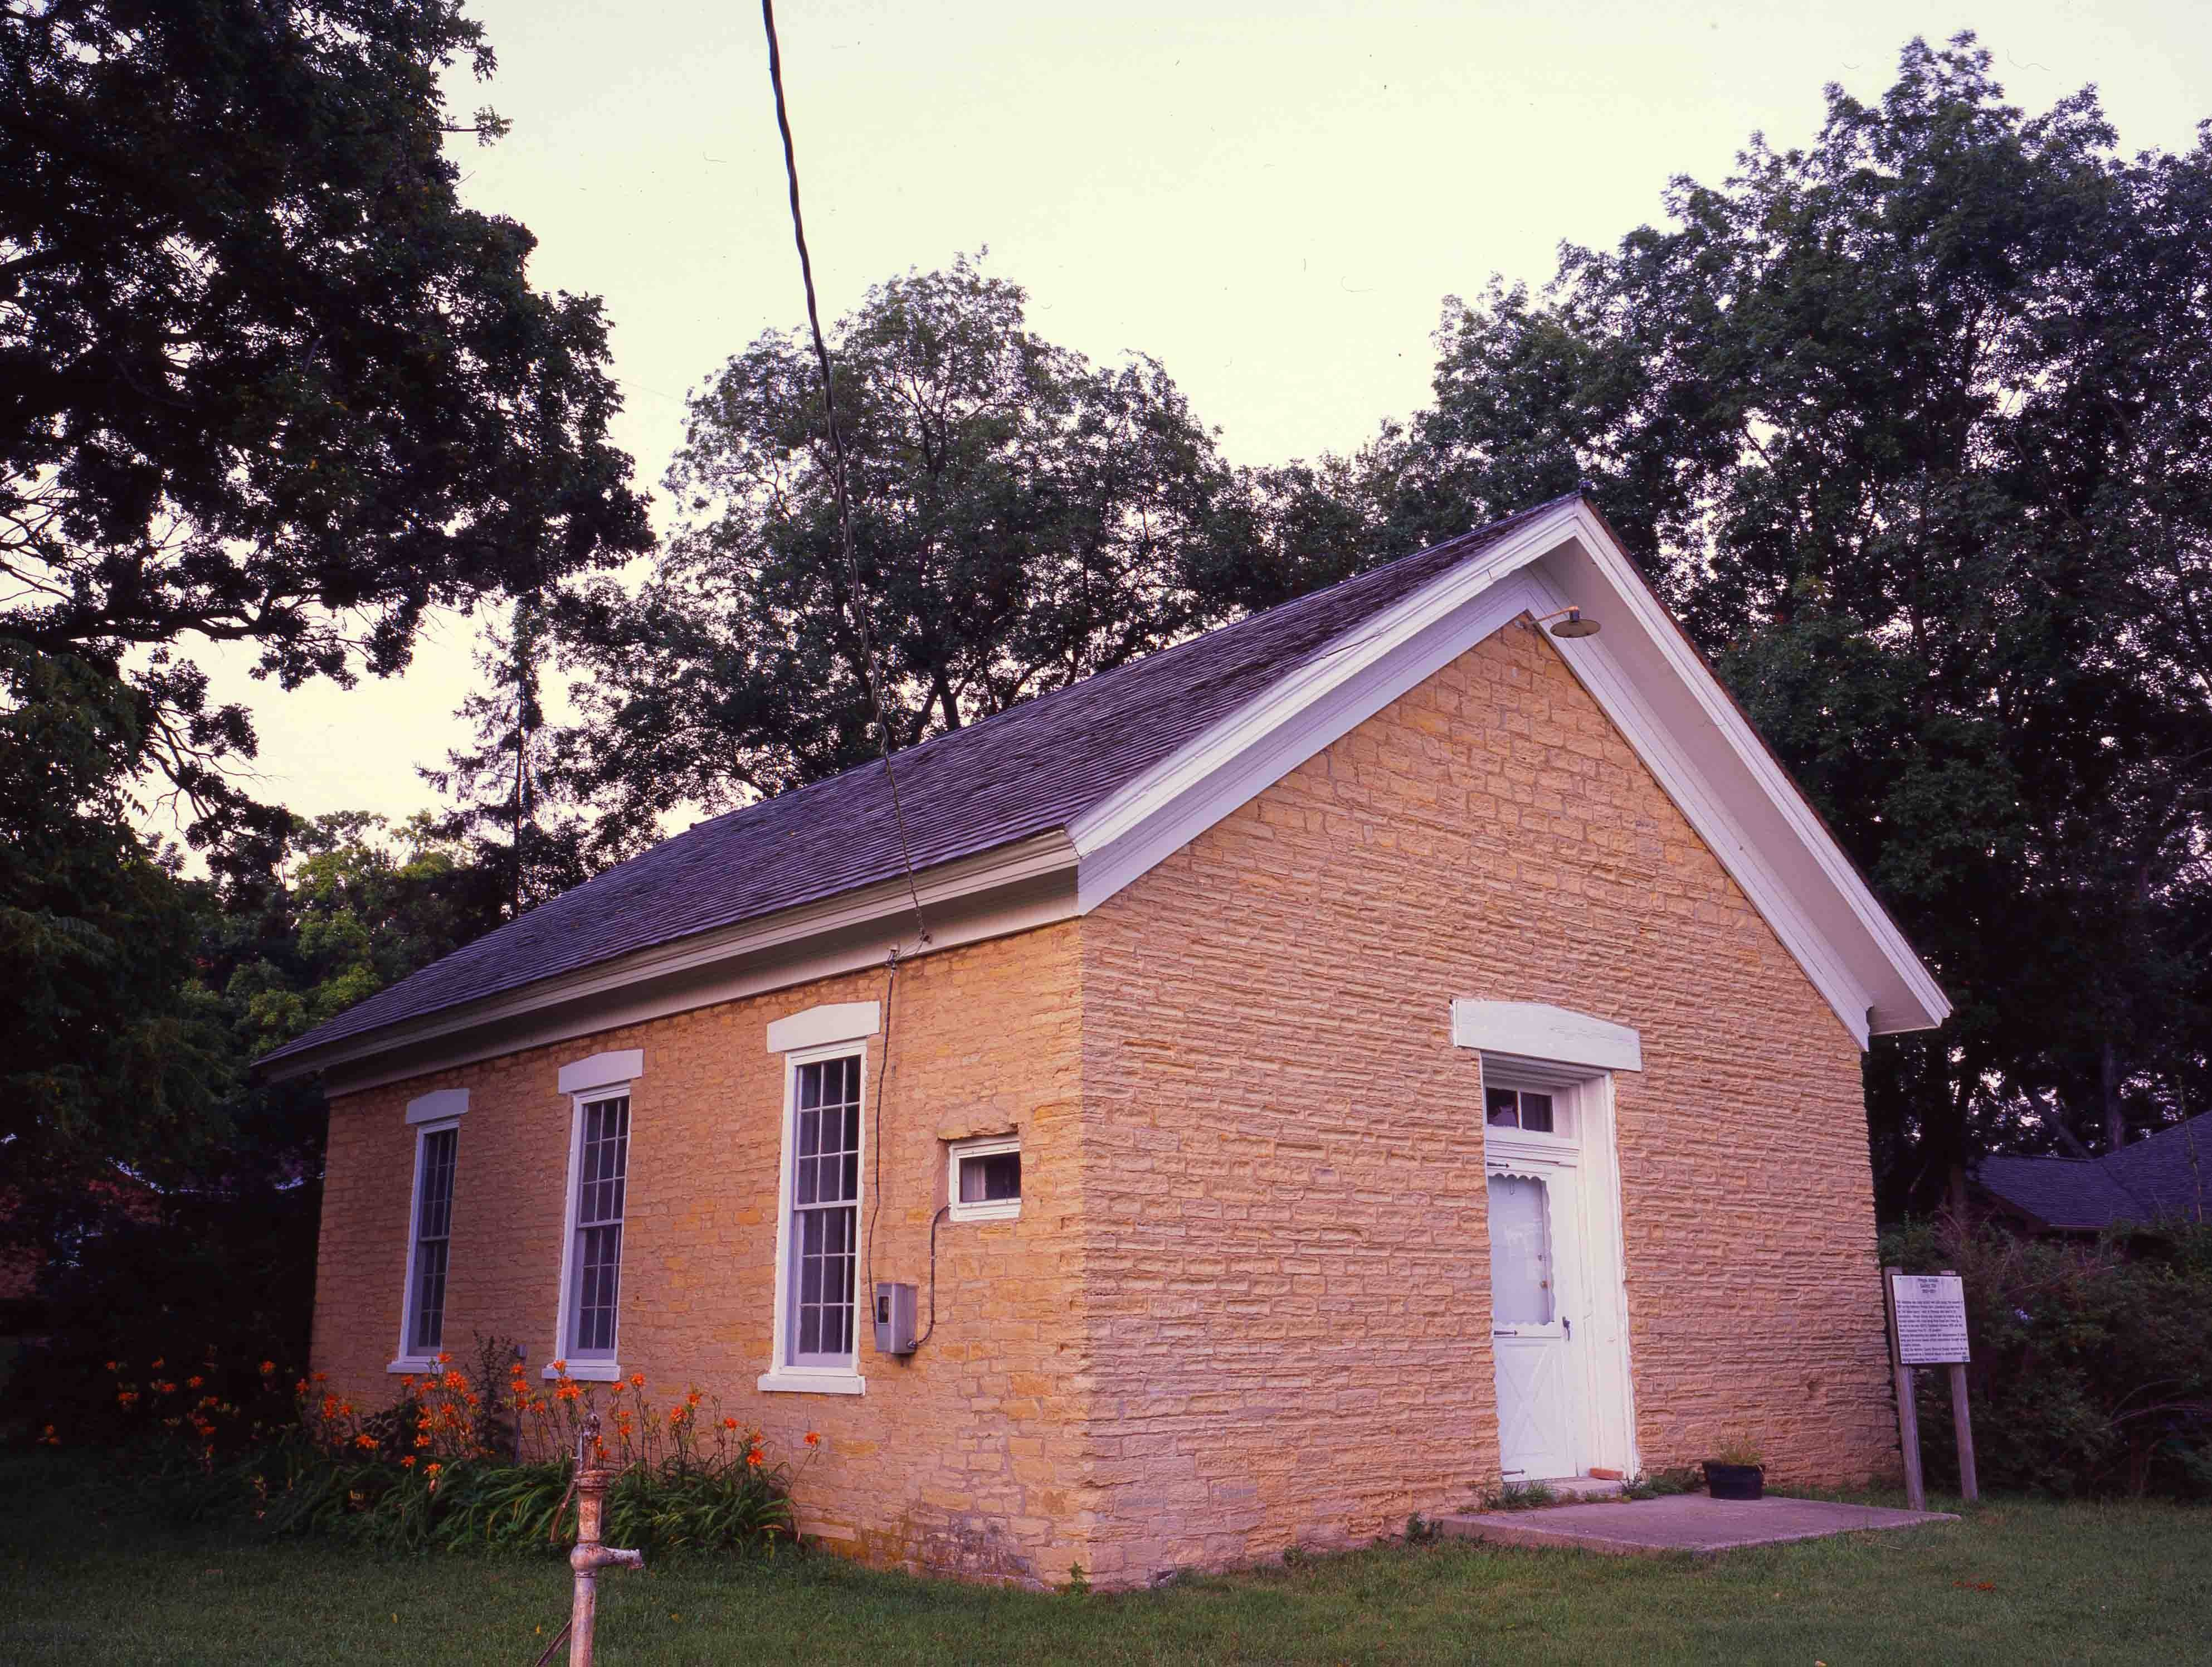 Stop by Saturday during the open house of the 1867 limestone Pringle one-room schoolhouse. Then take a short stroll to the pre-Civil War Stewart's Scottish Cemetery.